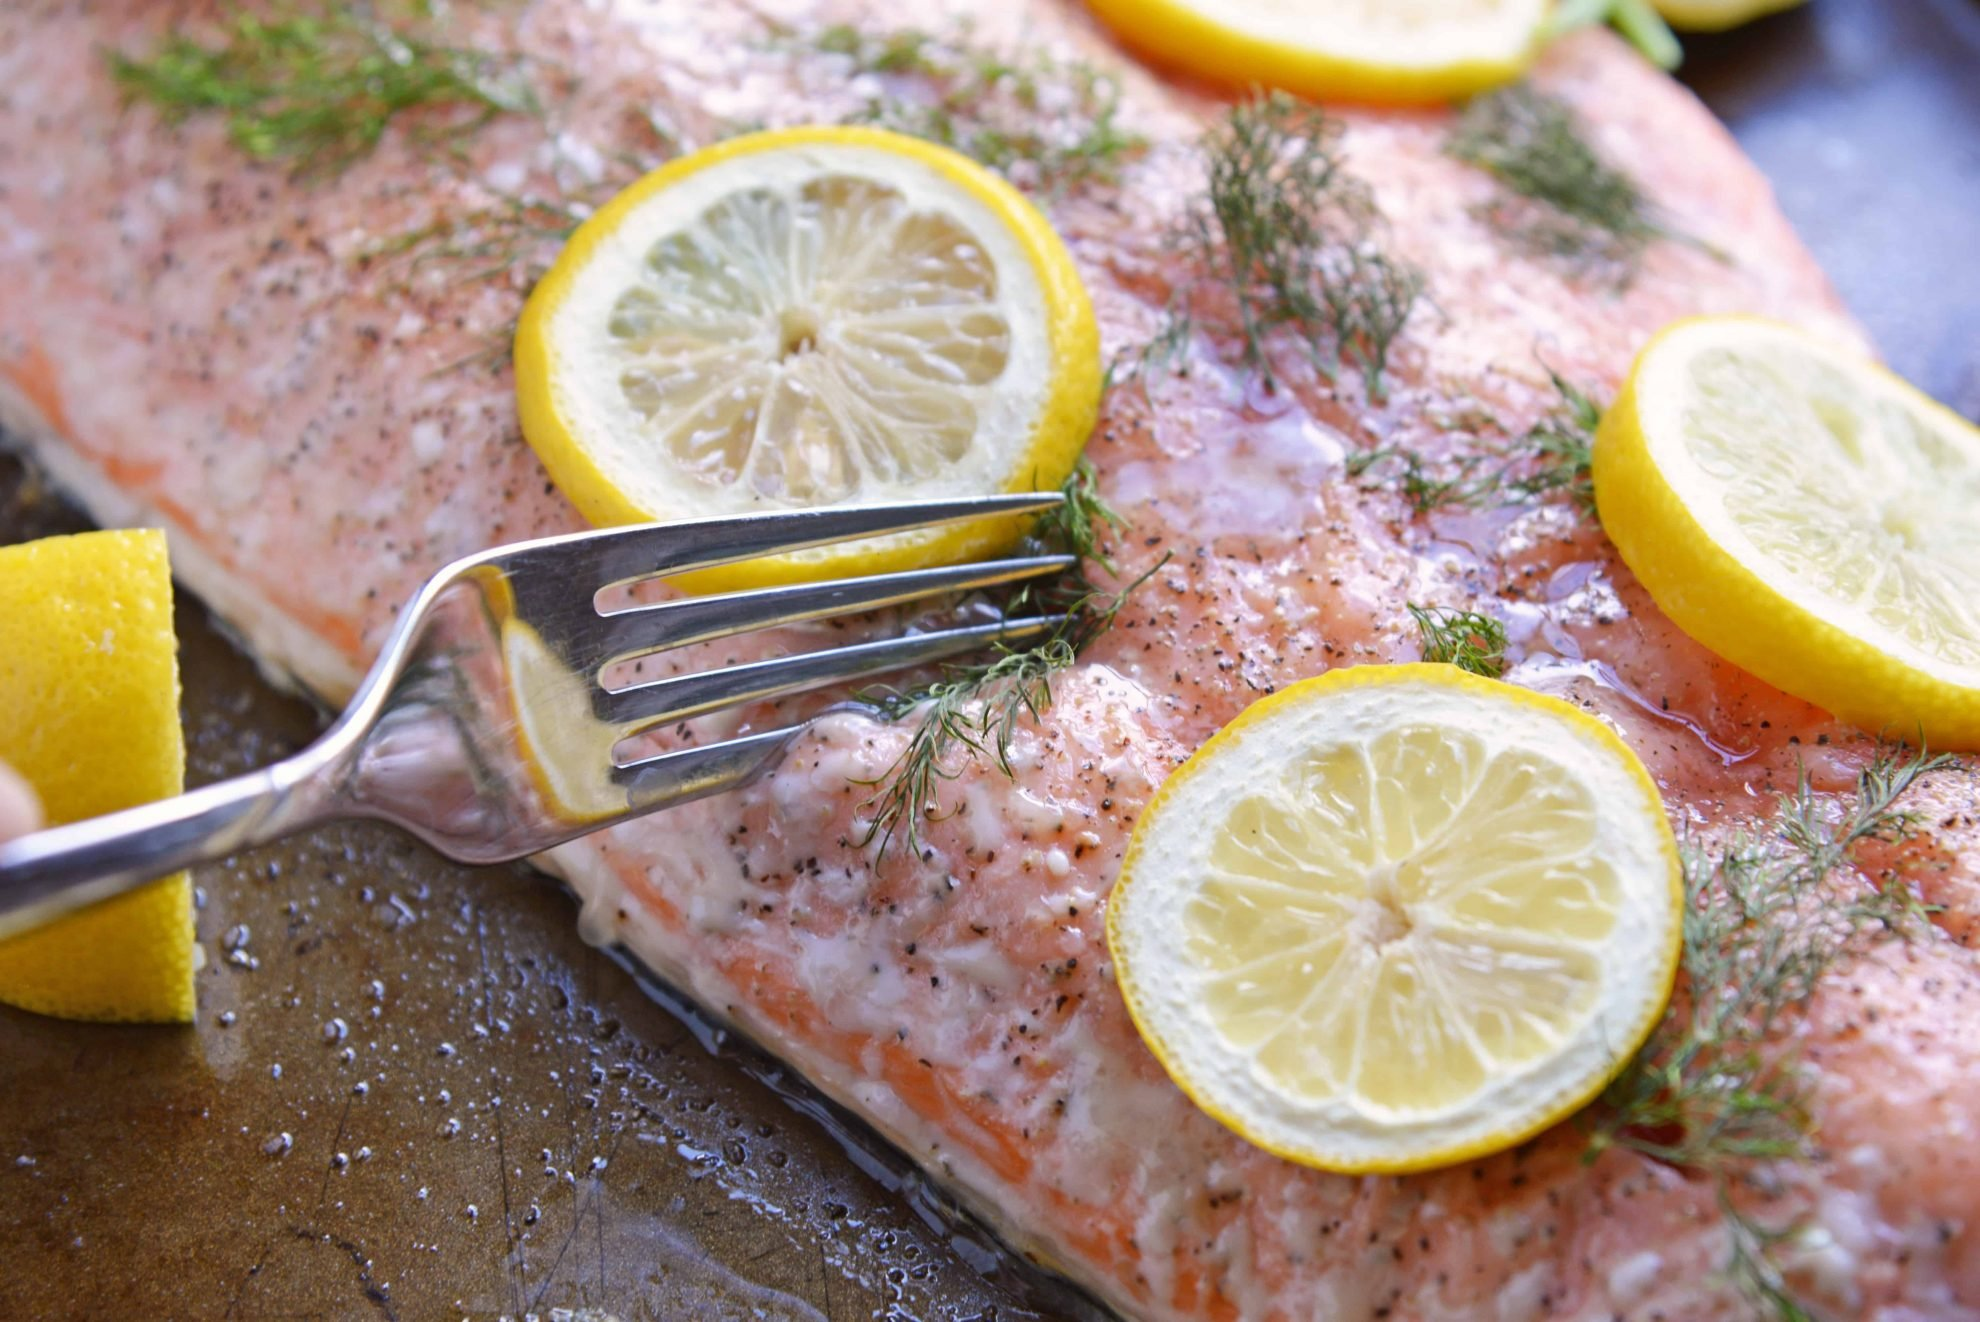 Fork cutting into salmon fillet with lemon slices